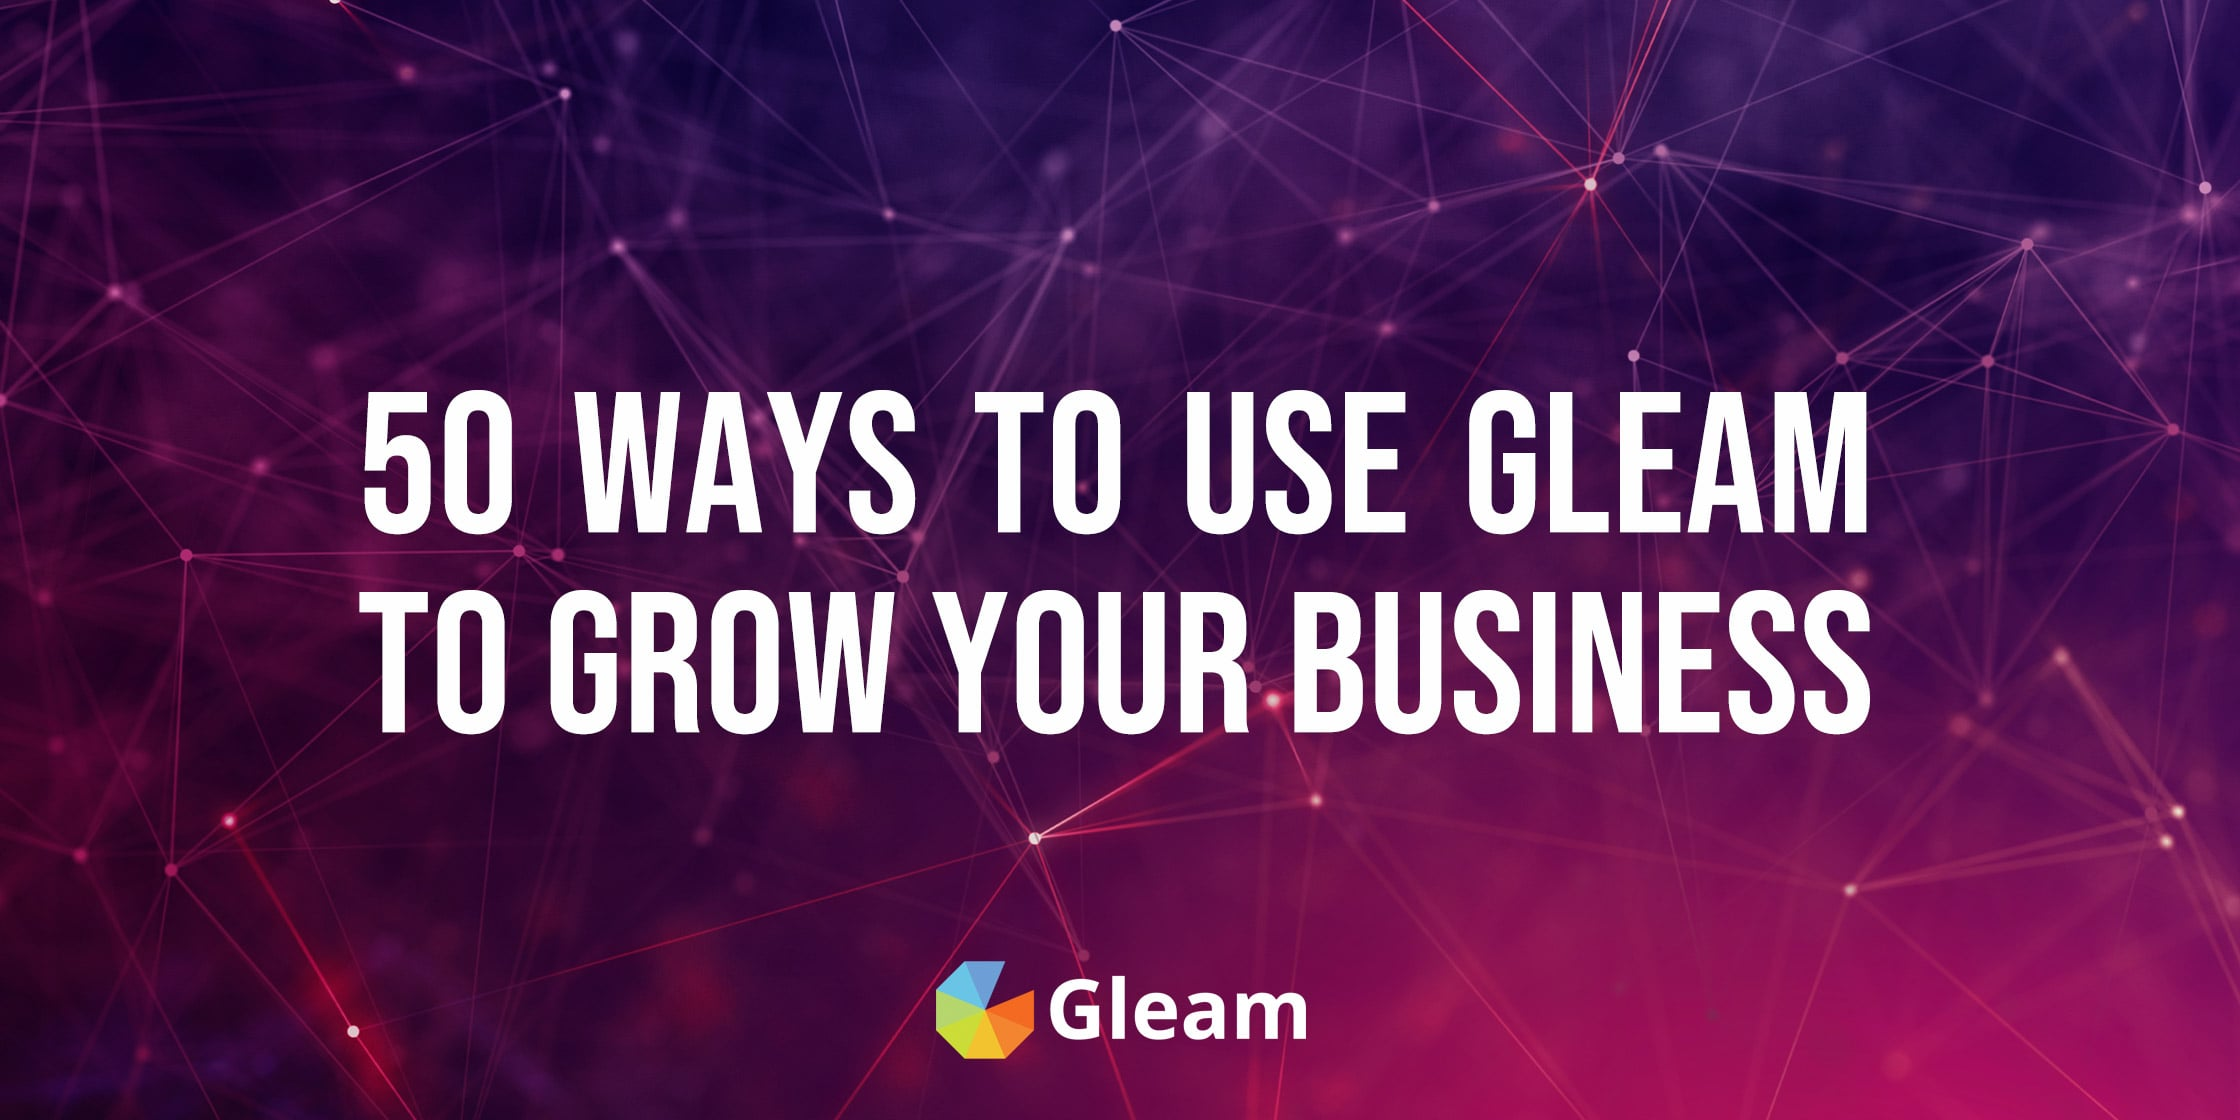 50+ Growth Hacks Using Gleam.io